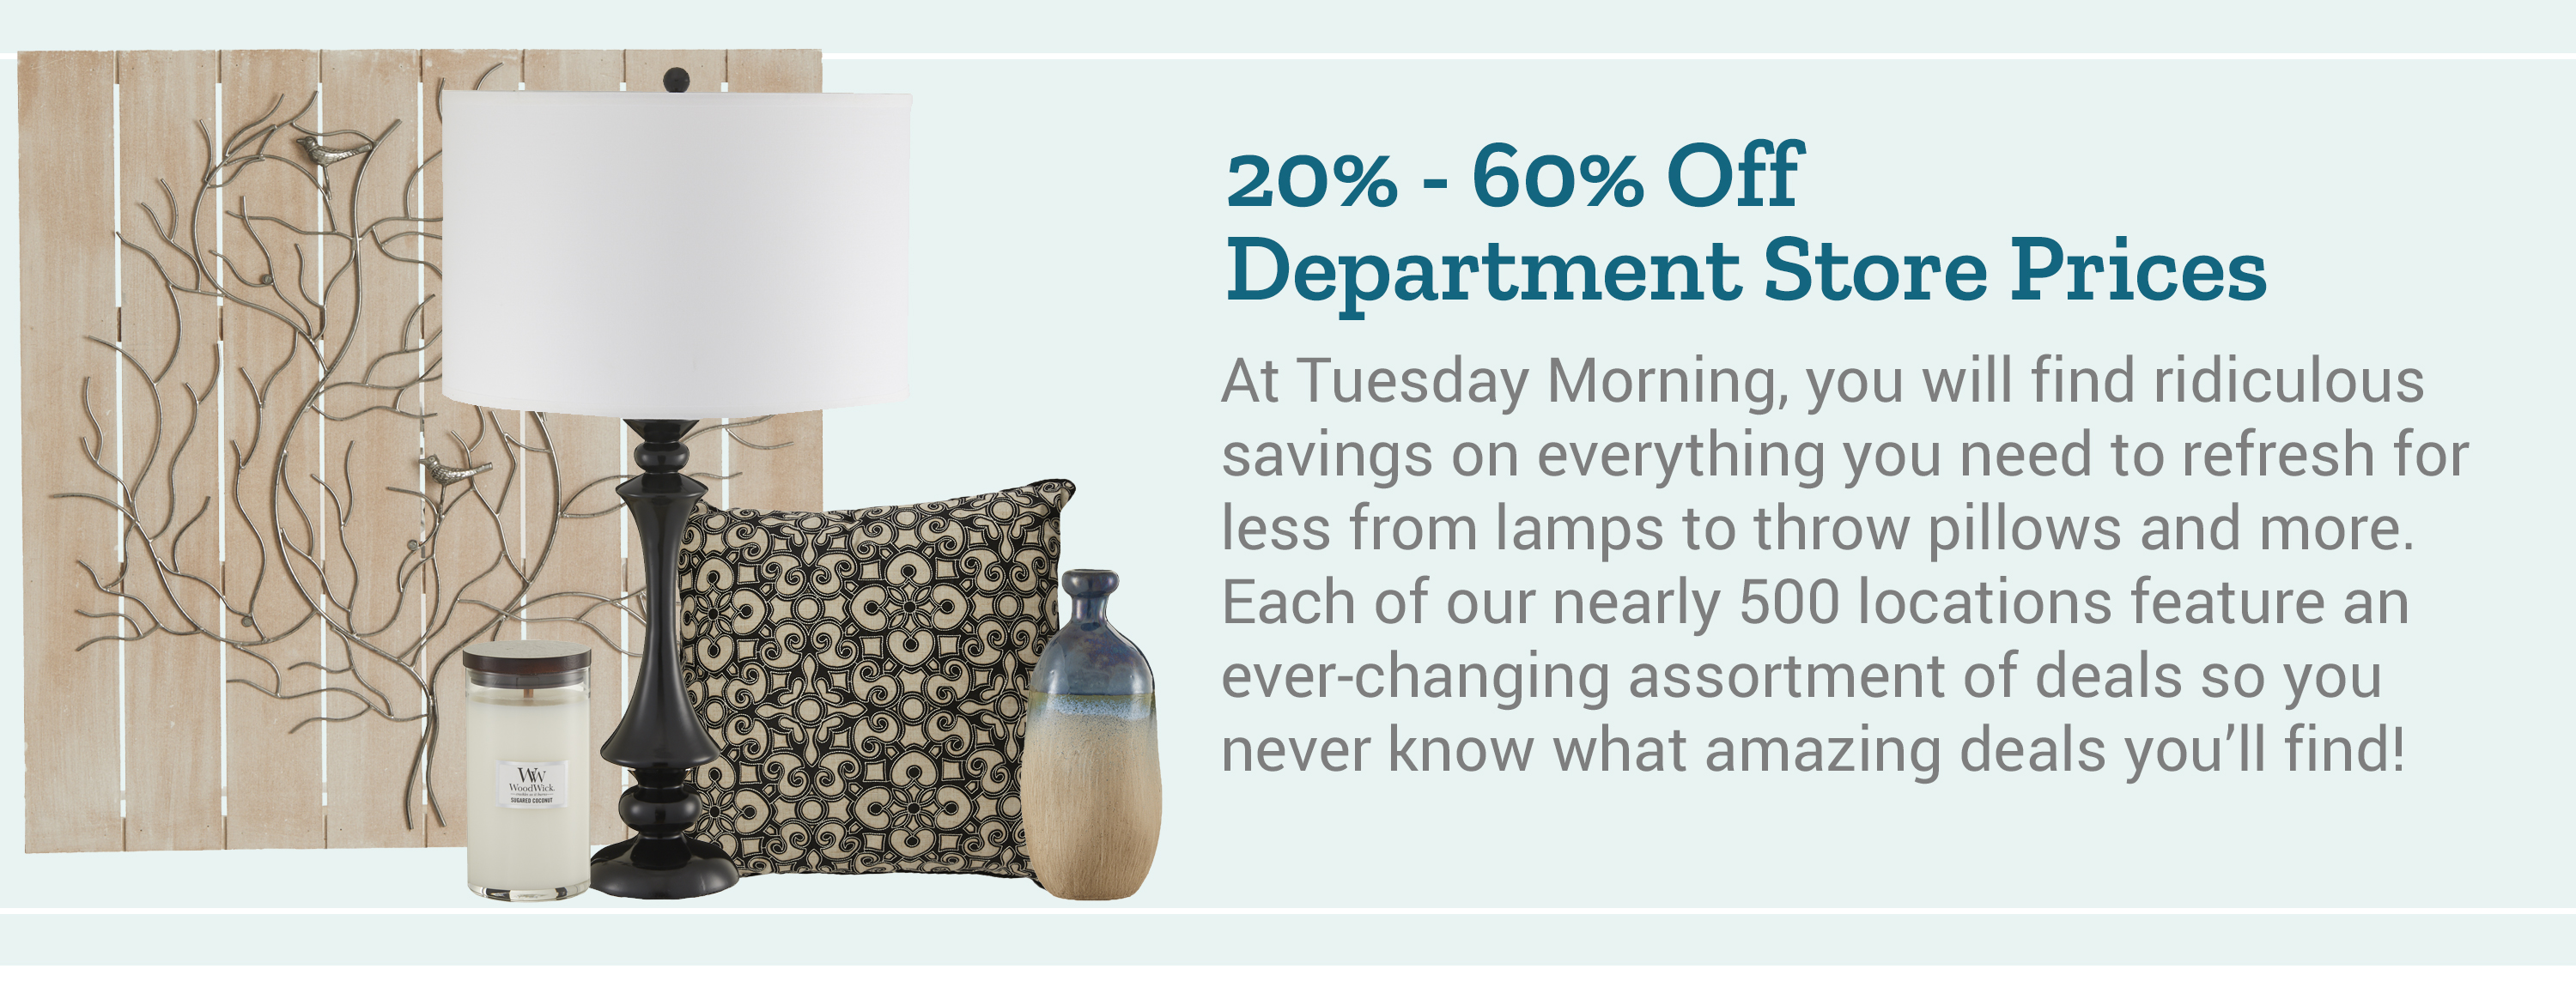 At Tuesday Morning, you will find ridiculous savings on everything you need to refresh for less from lamps to throw pillows and more.  Each of our nearly 500 locations feature an ever-changing assortment of deals so you never know what amazing deals you'll find!